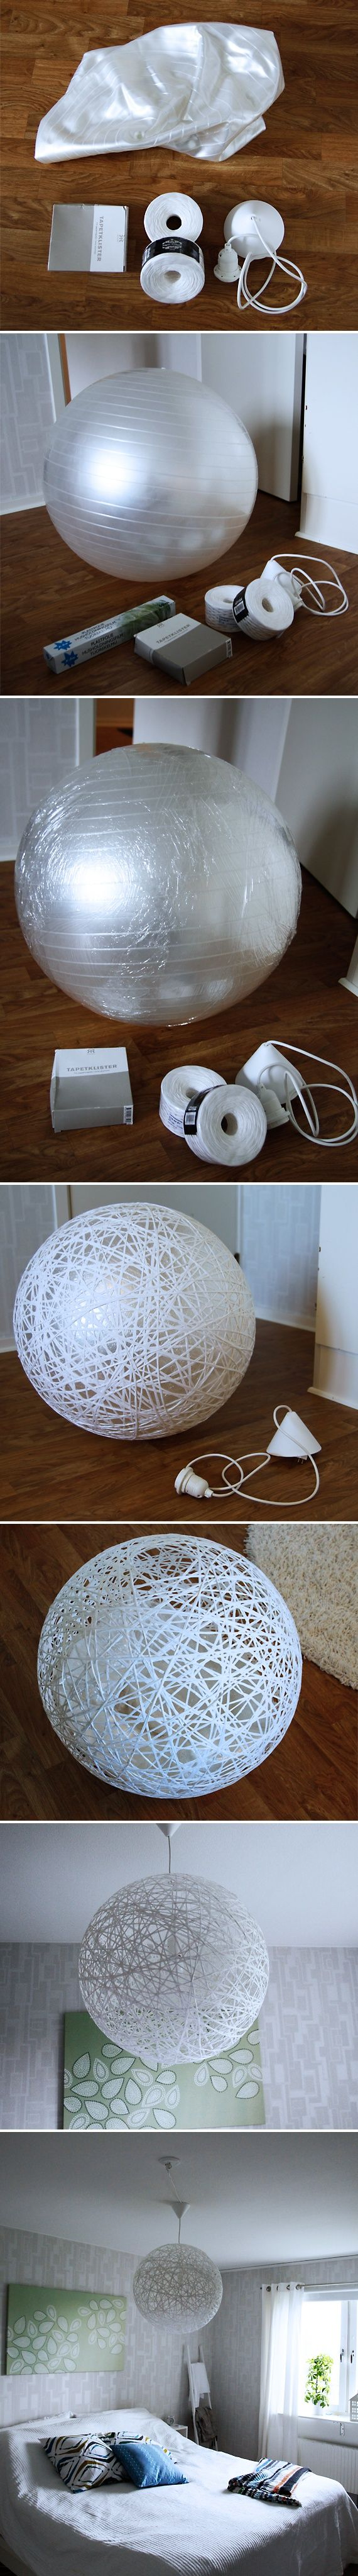 DIY string lamp- Add some twinkle lights to sparkle it up